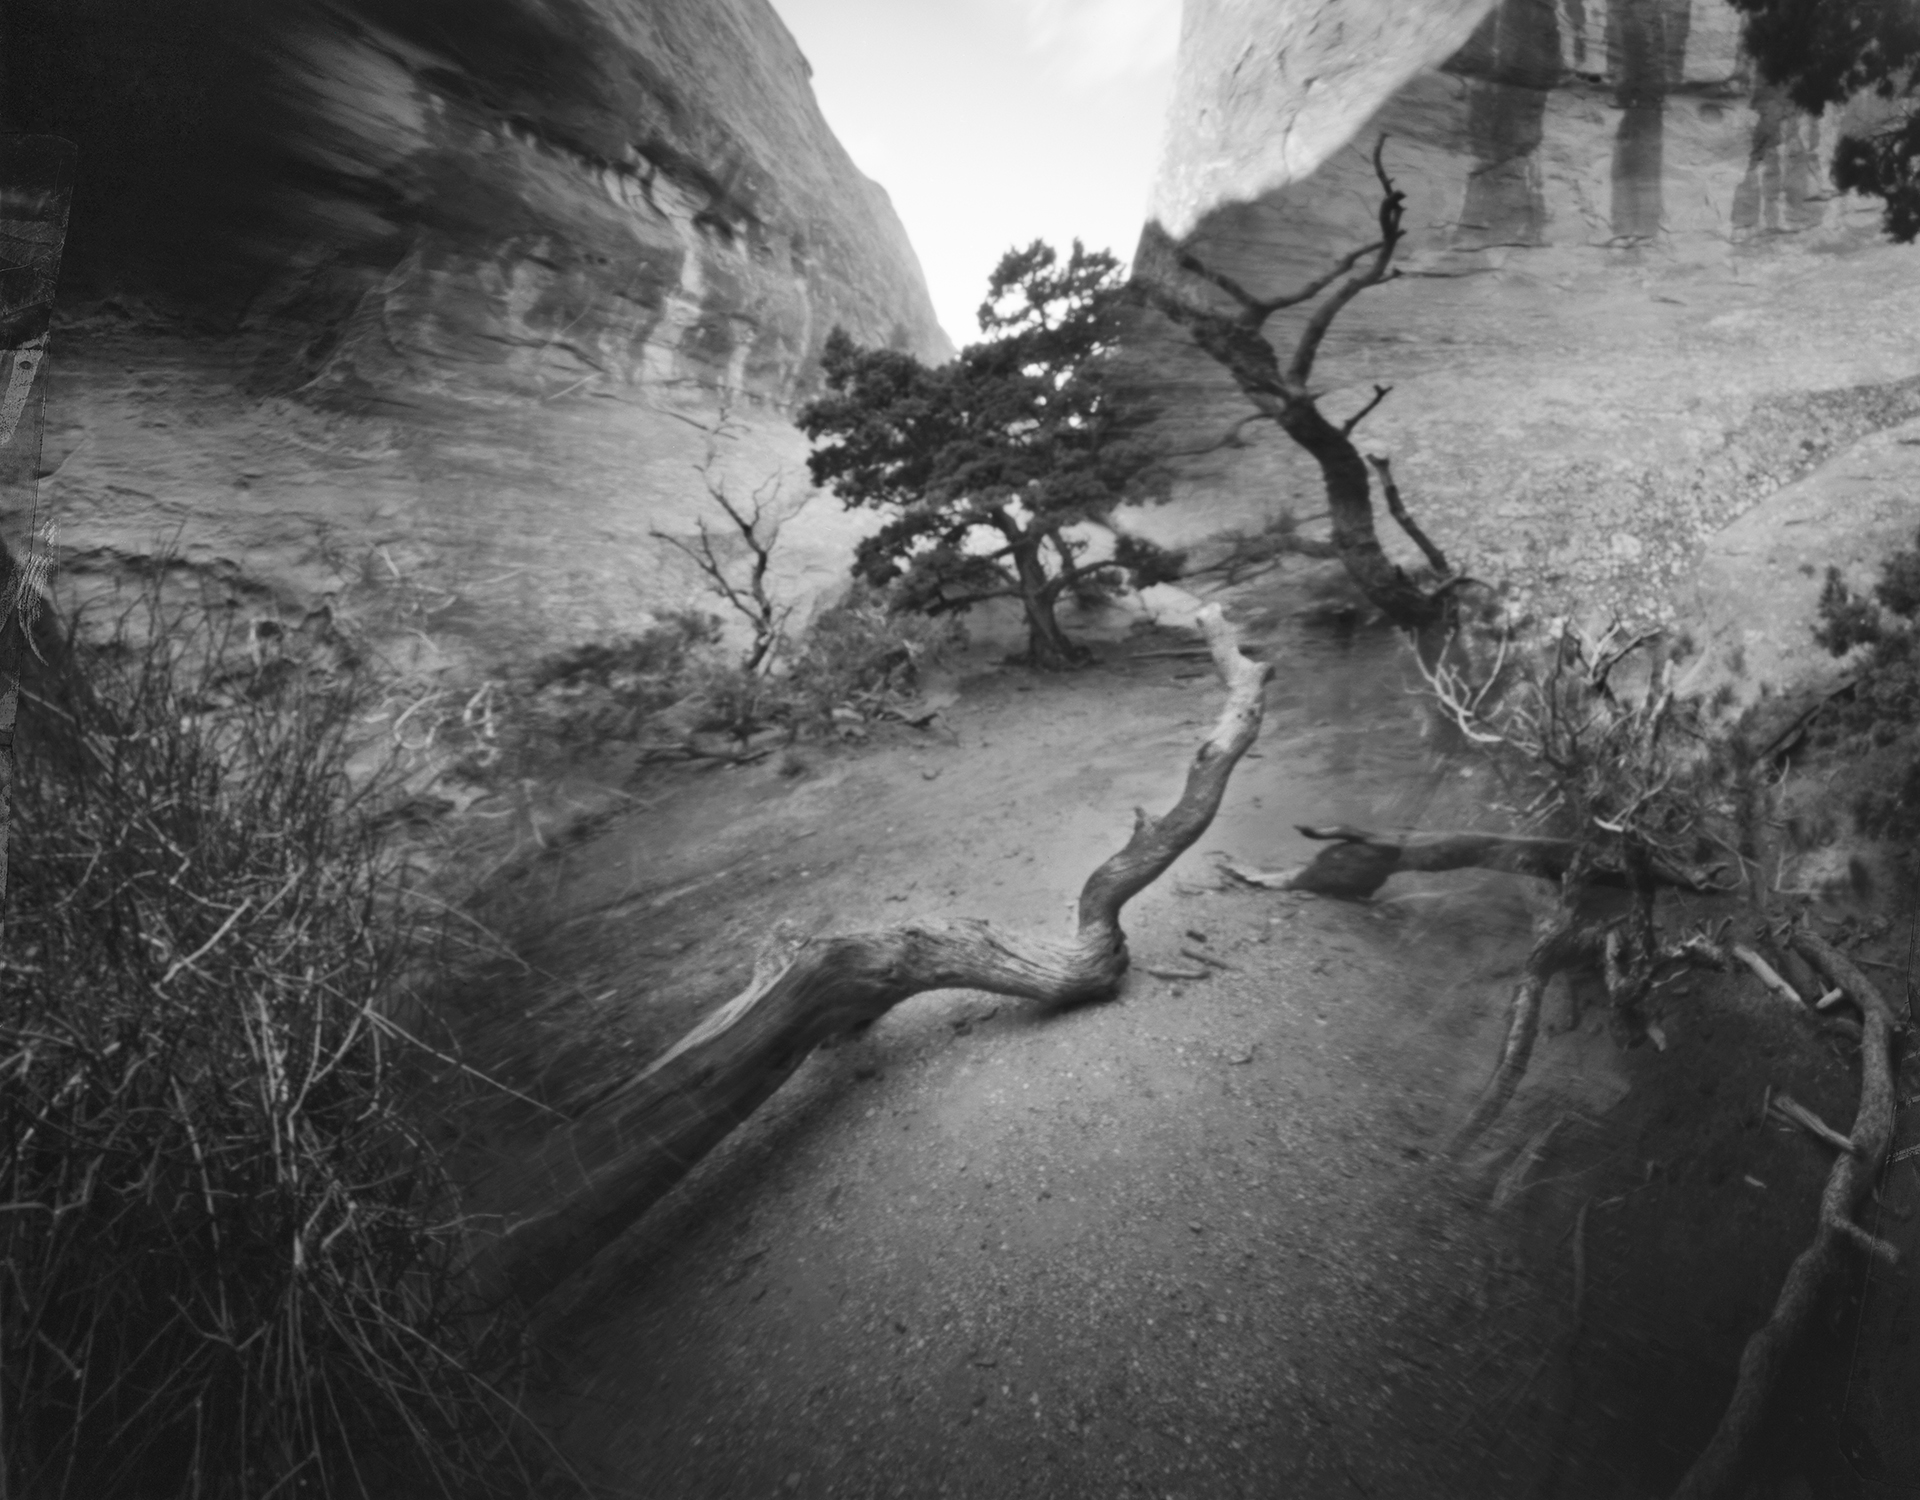 """Devil's Garden, Arches National Park"" by Micheal Butts"